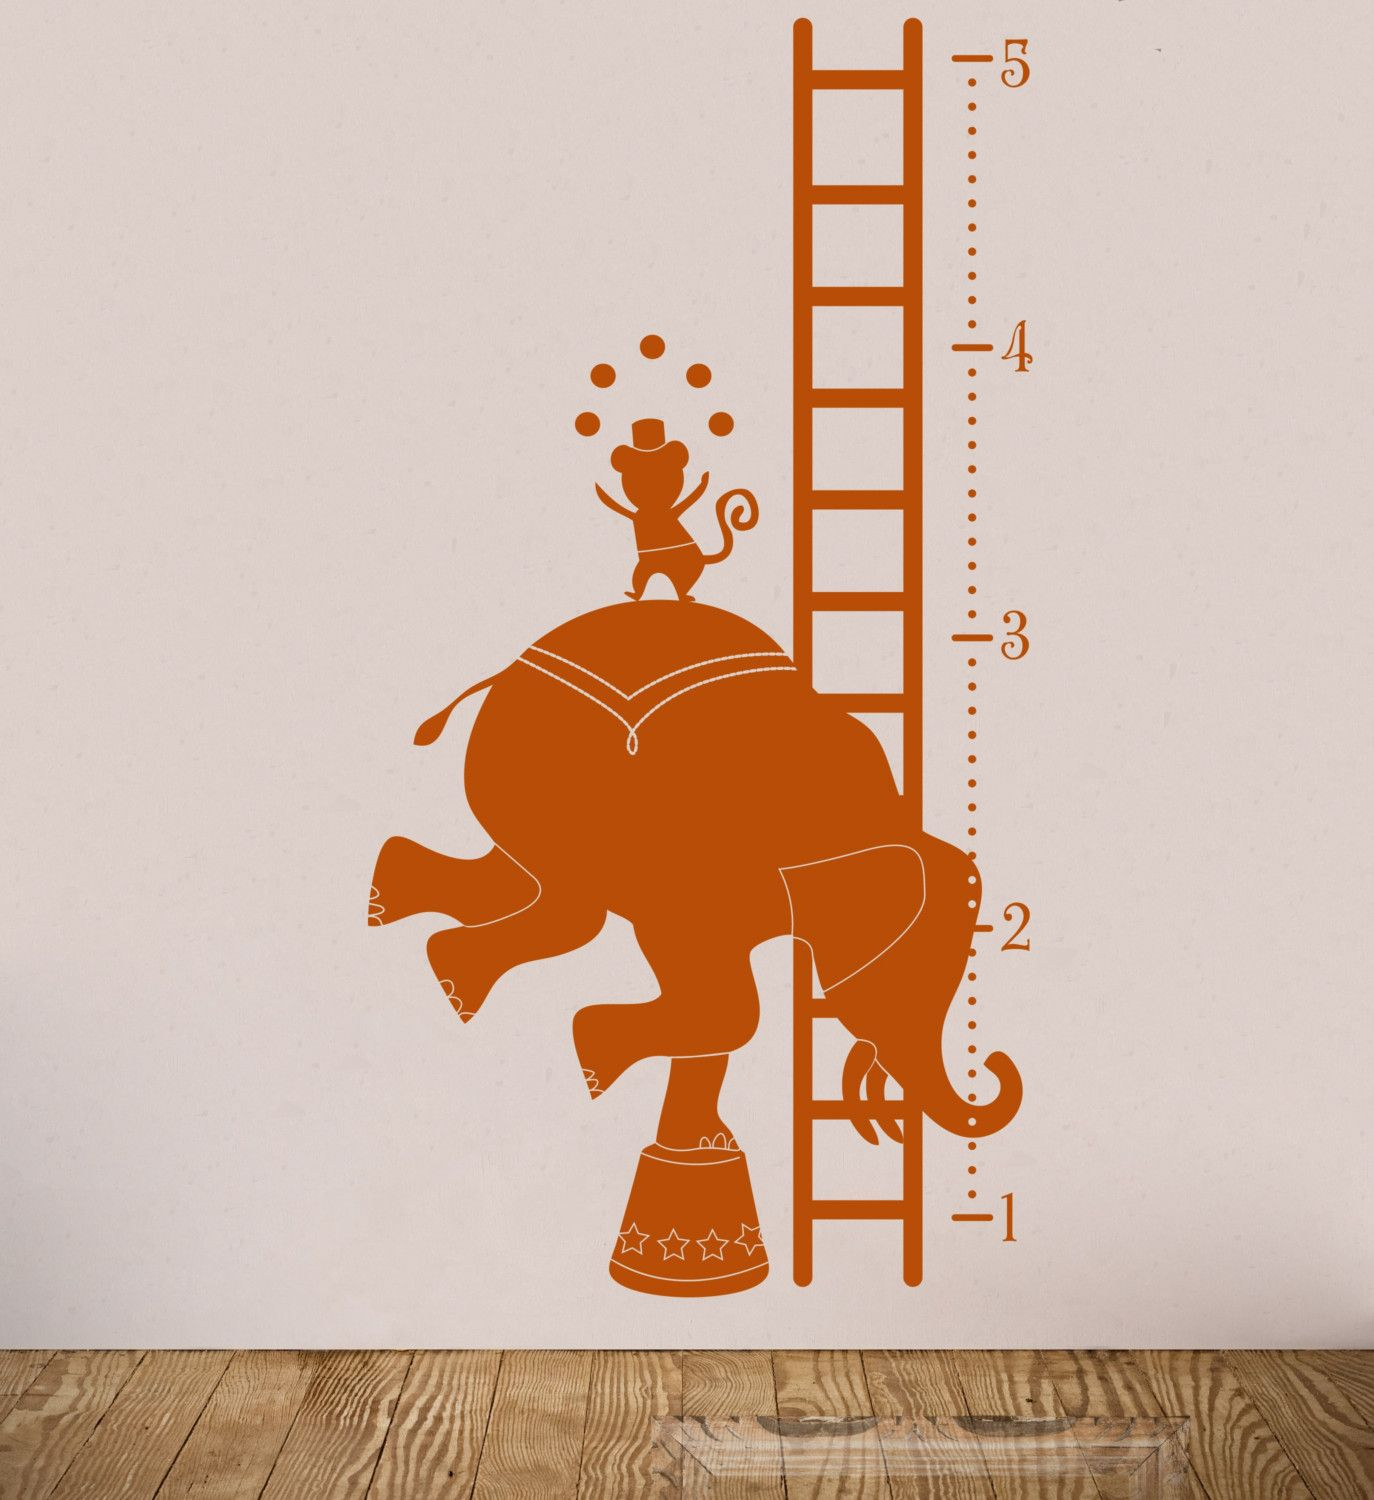 Wall graphic measuring height chart for kids wall graphics childrens circus growth chart vinyl wall decal by byrdiegraphi amipublicfo Gallery